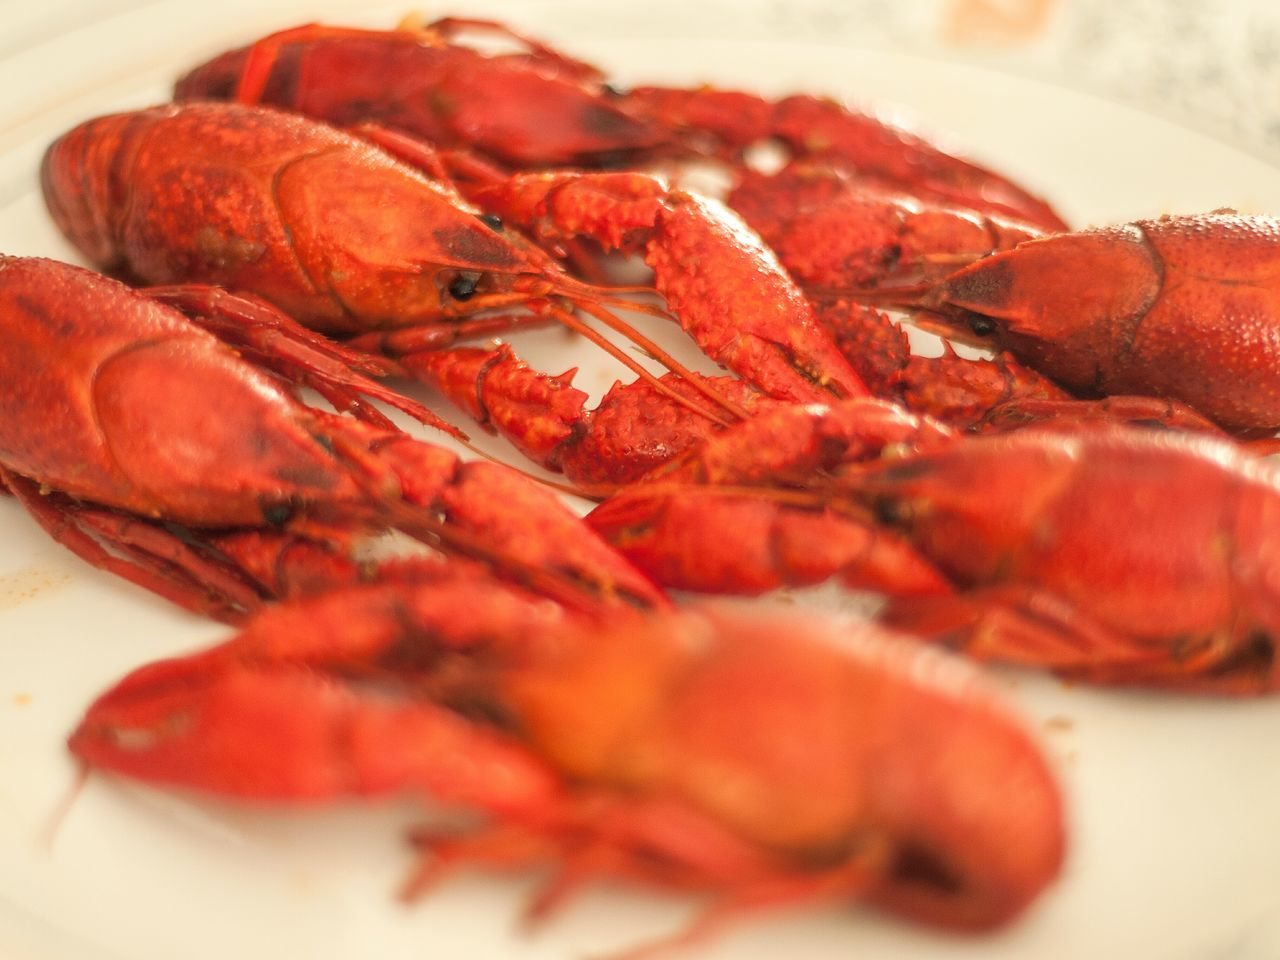 Red Freshness Close-up Food And Drink Food Healthy Eating No People Indoors  Day Bokeh Crawfish Boil  Crawfish Crawfish Time Spicy Food Seafoods Seafood Lovers Crayfish SHELLFISH  Seasonal Food White Background